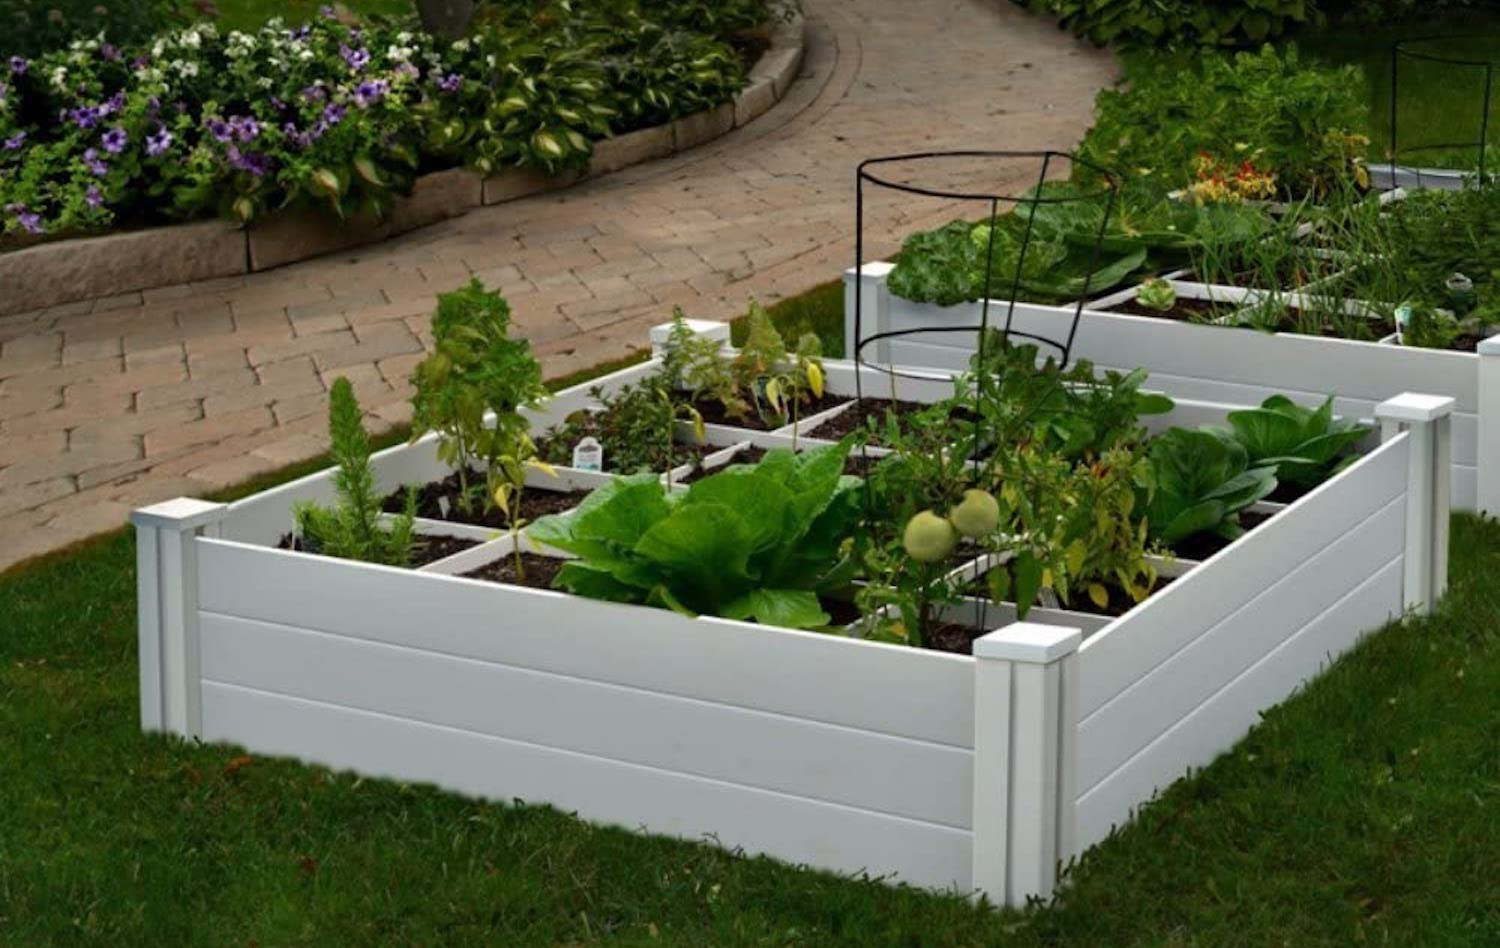 A white raised garden bed, filled with vegetables and with a grid pattern separating sections